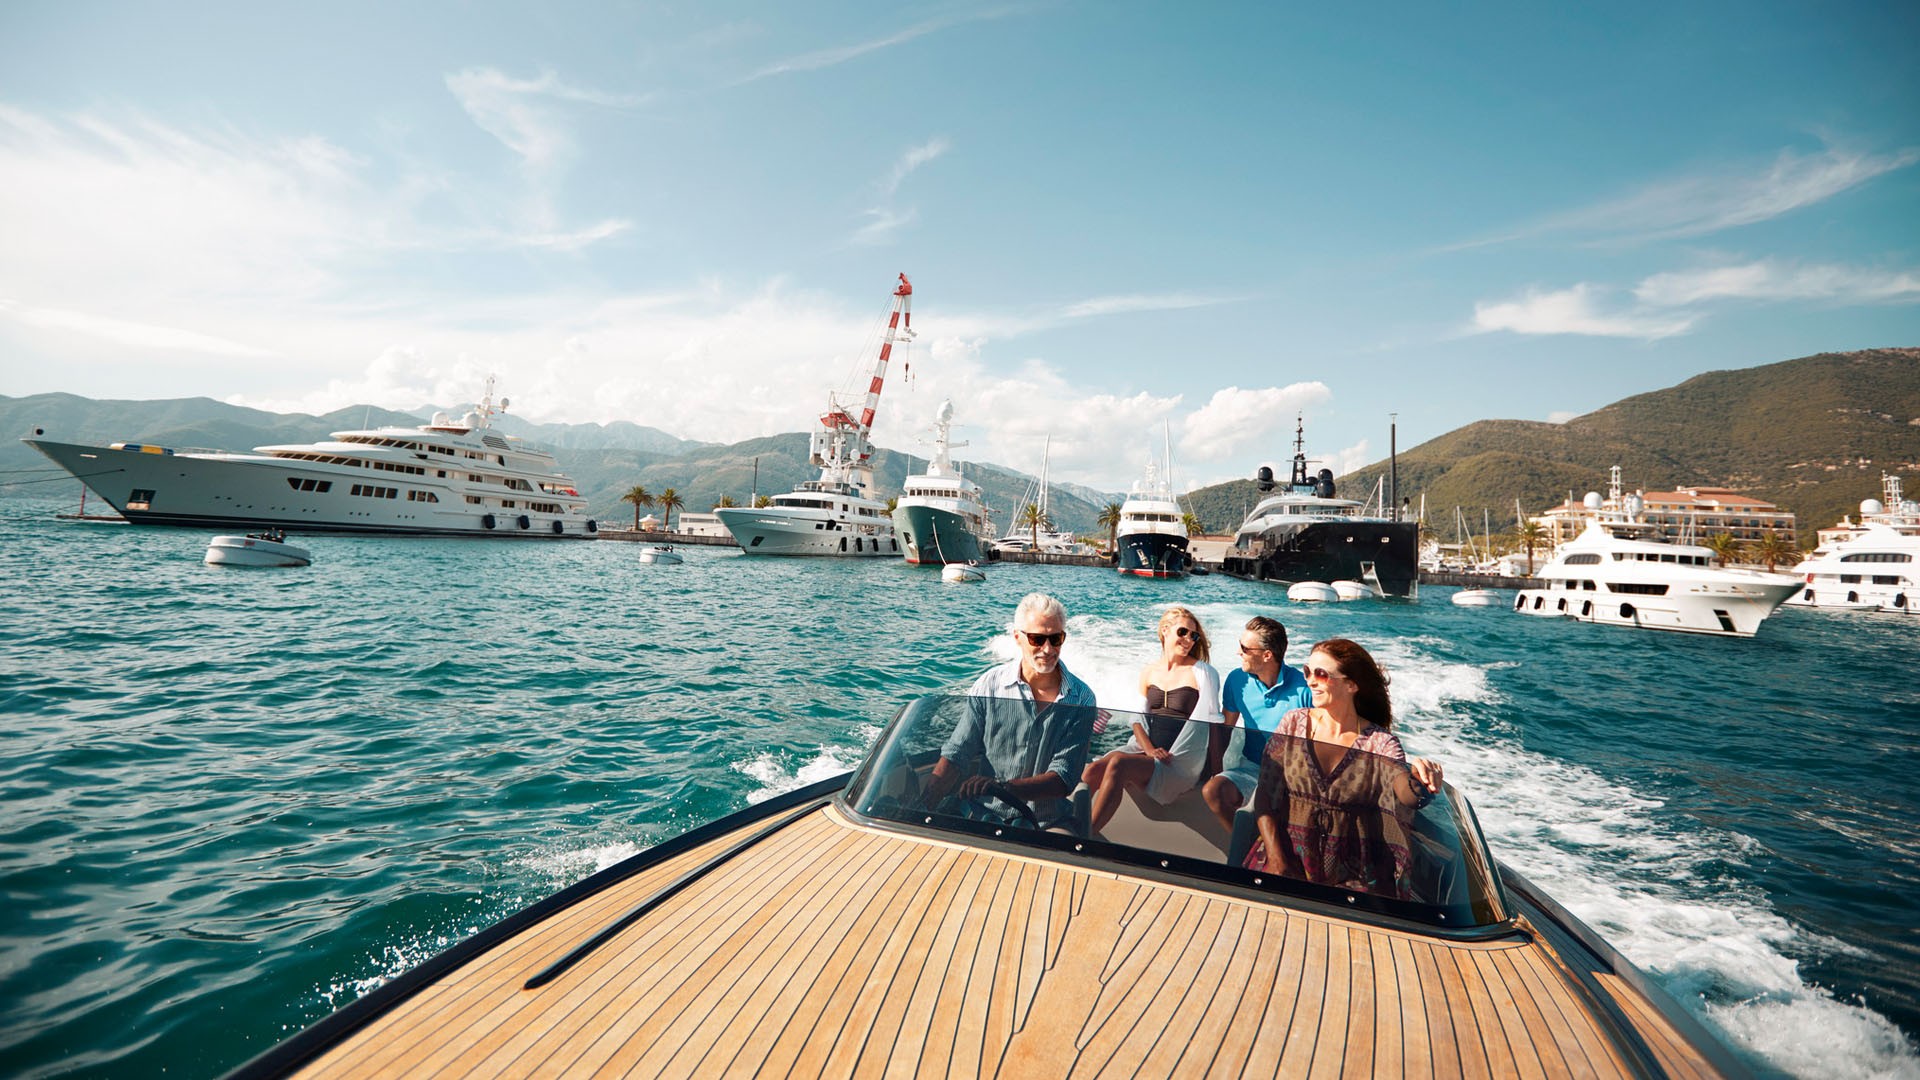 Happy, wealthy people on a speedboat in Porto Montenegro